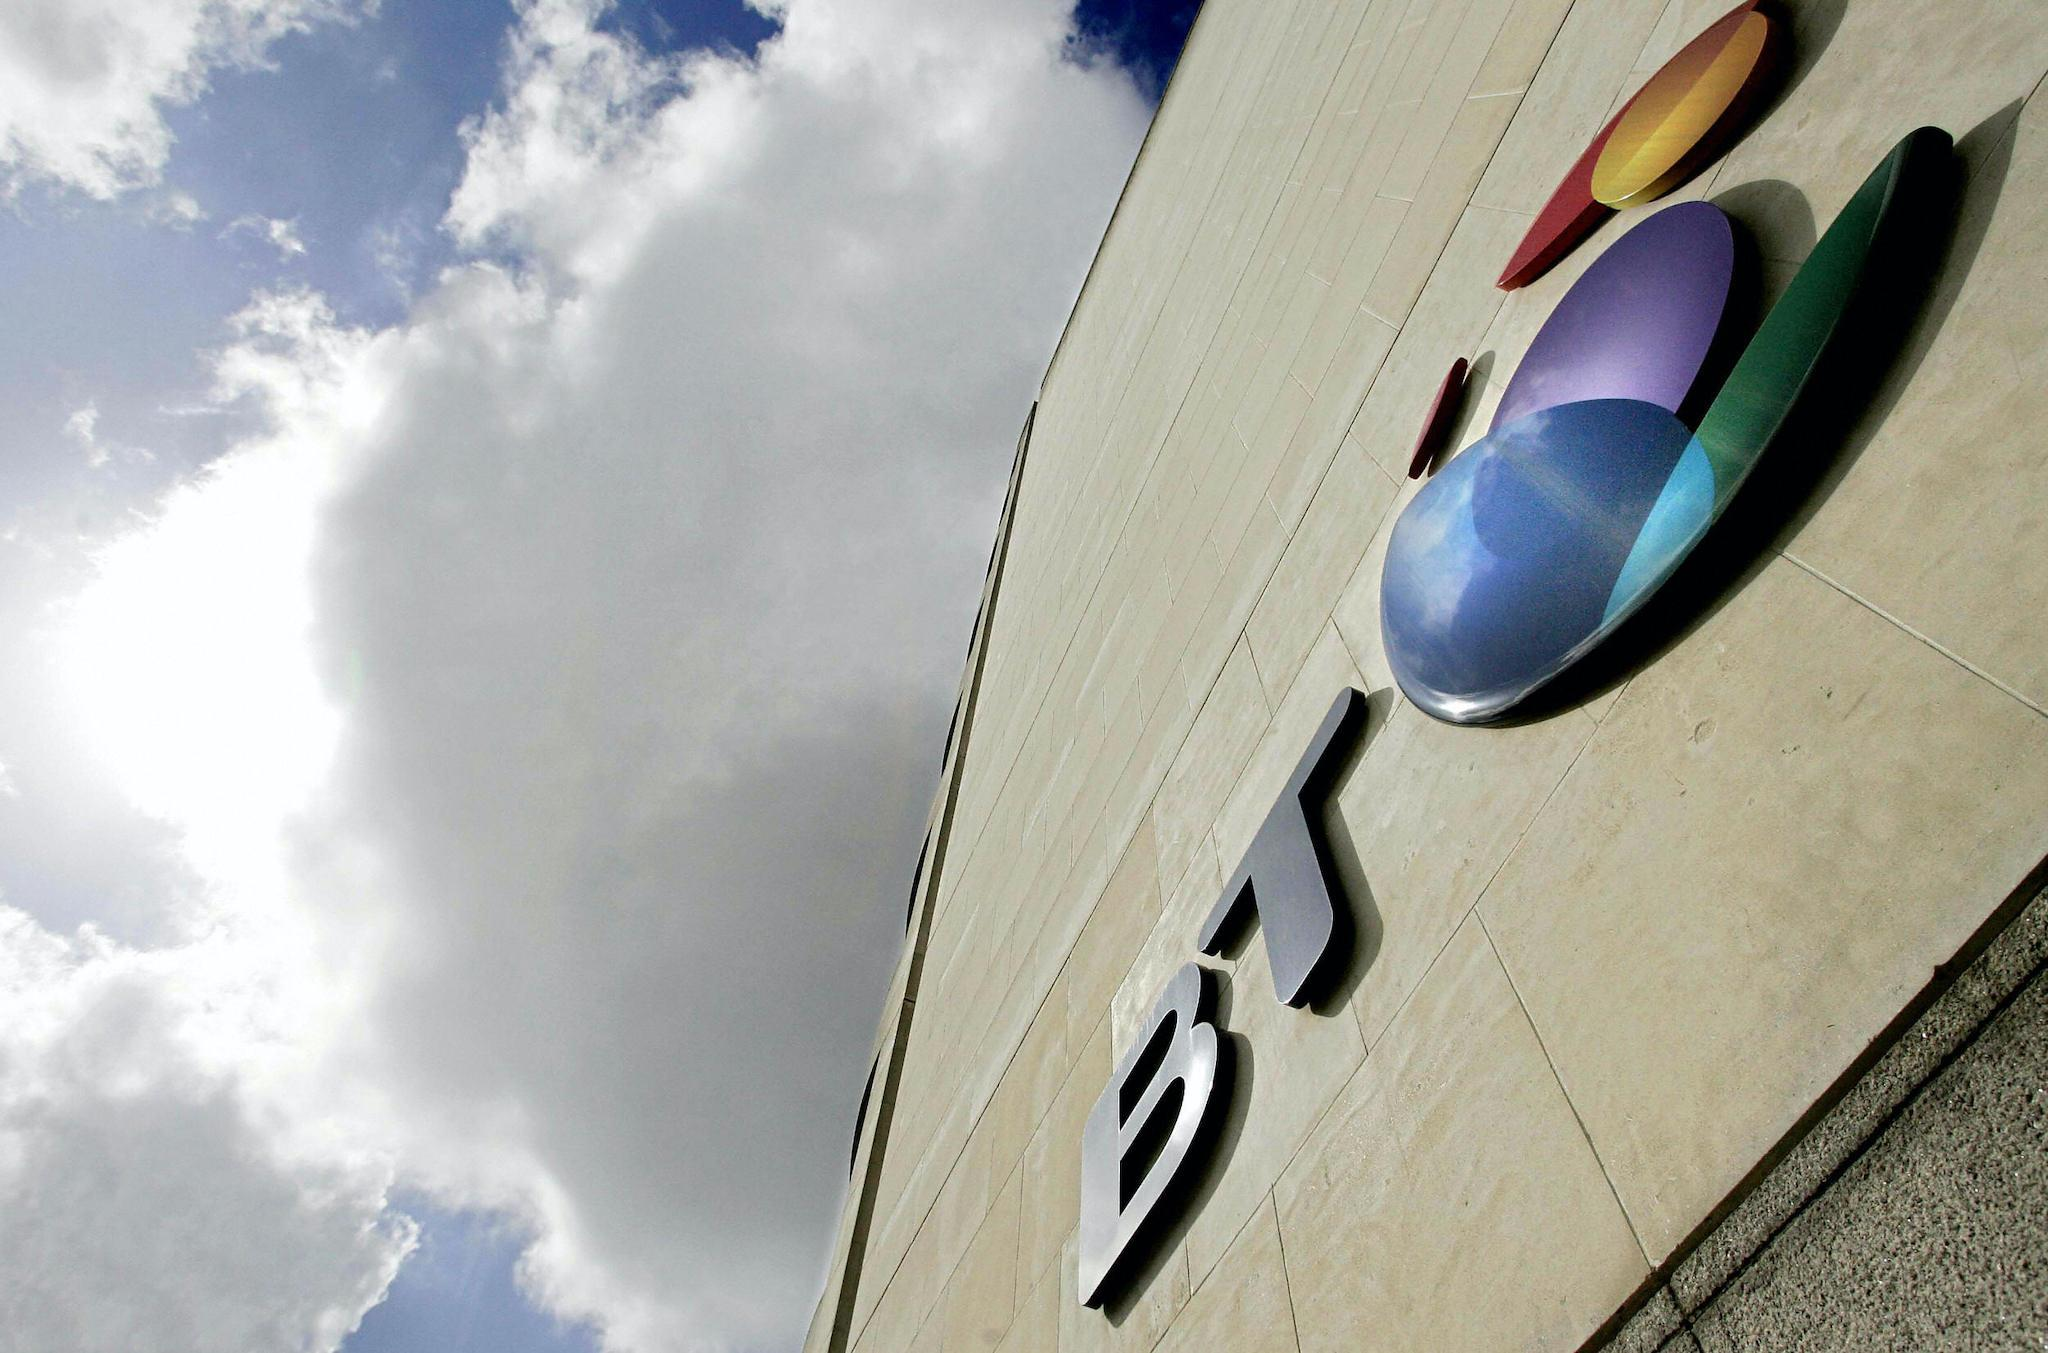 BT faces £600m lawsuit over alleged overcharging of 2.3 million customers